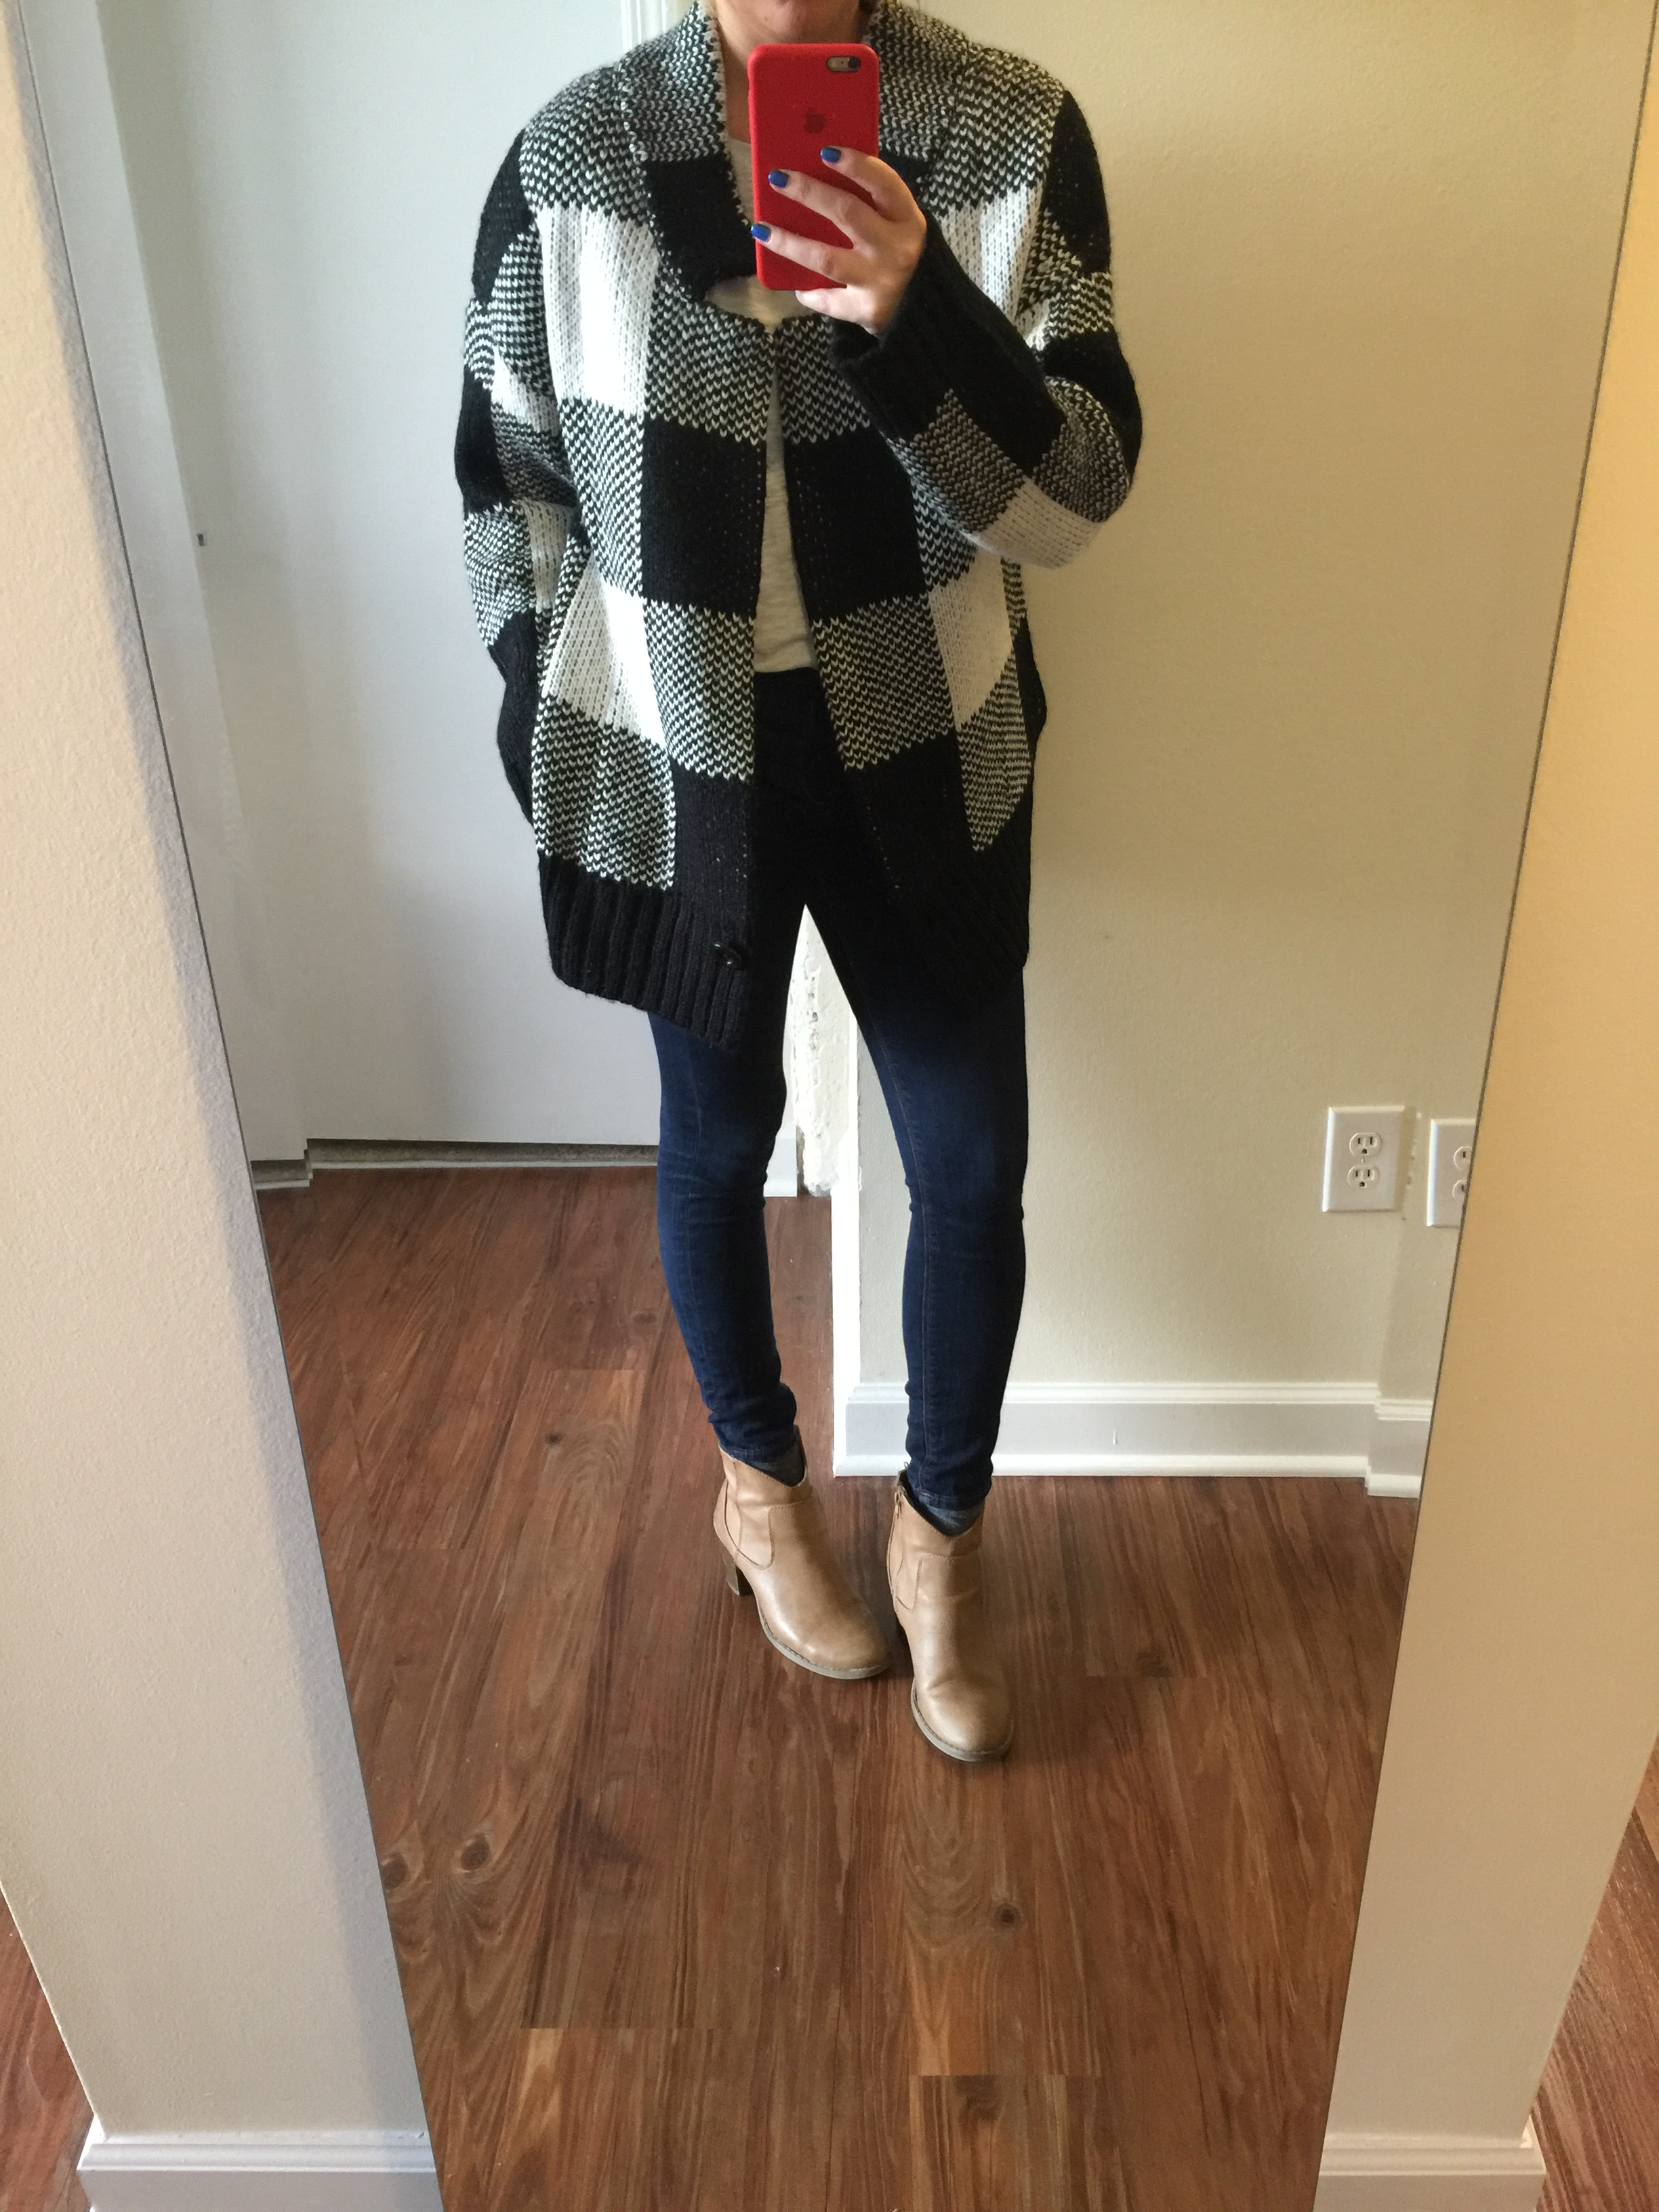 Sweater: Nordstrom,  artee couture plaid cardigan , Jeans:  Solid Dark Mid Rise Jean Legging , Boots: Old Navy